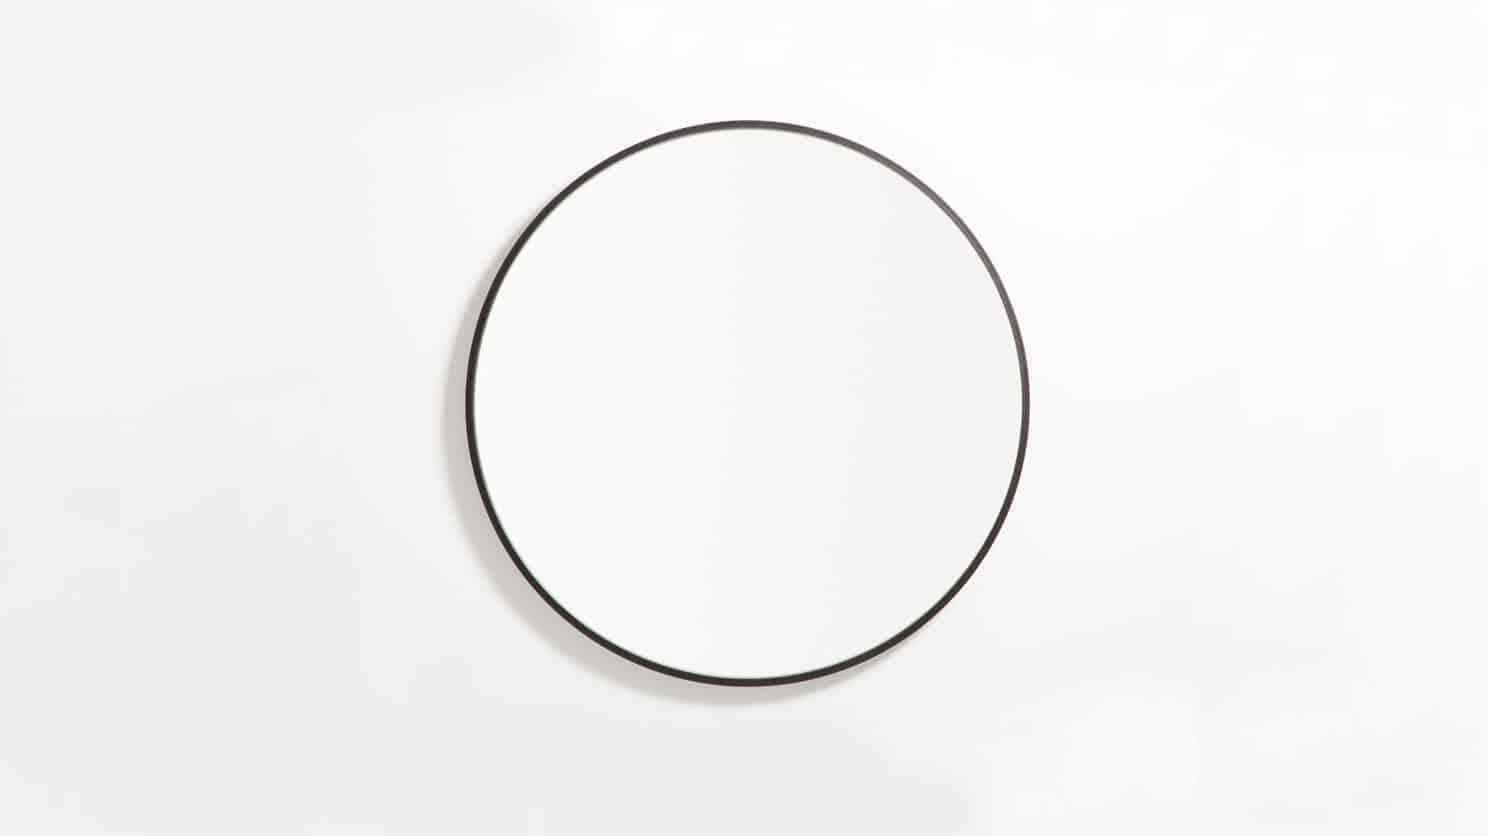 3130 043 1 6 mirror conner large black front